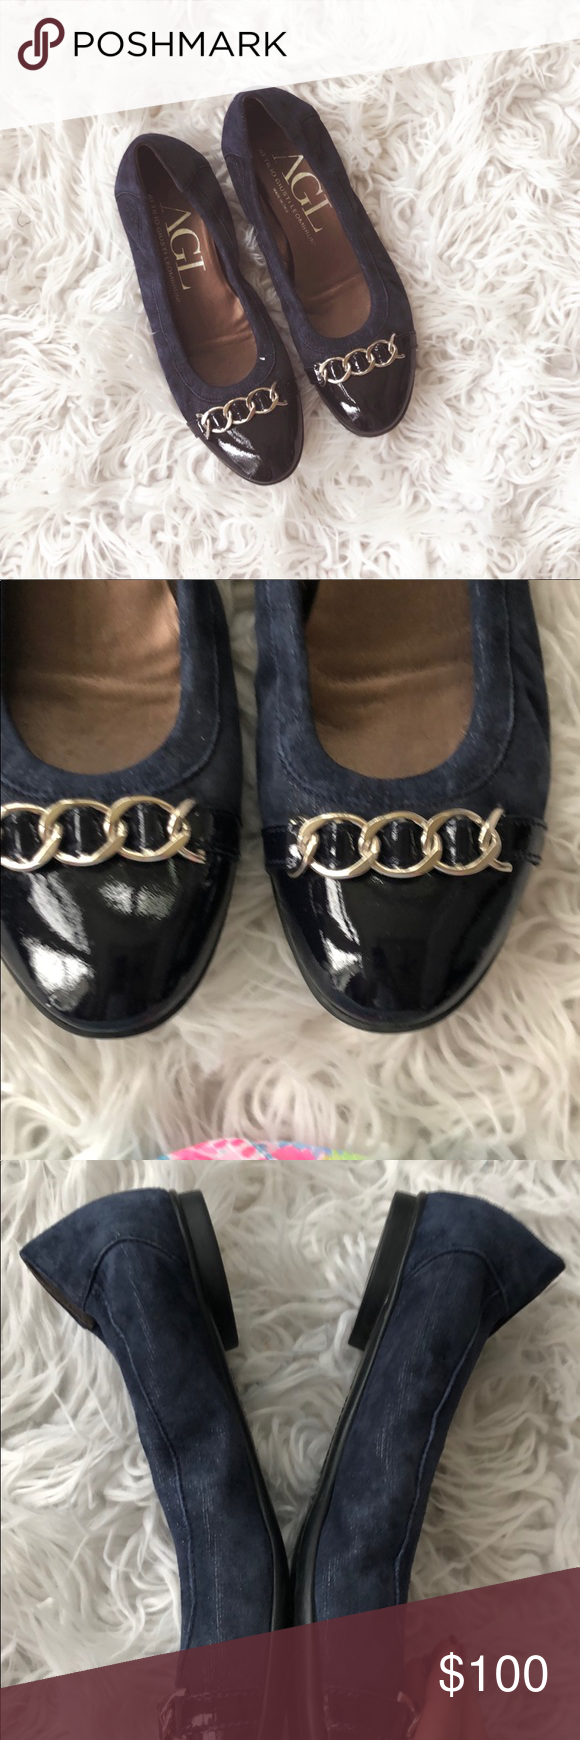 AGL Brown with Black Patent Toe Flats Size 39.5   Black